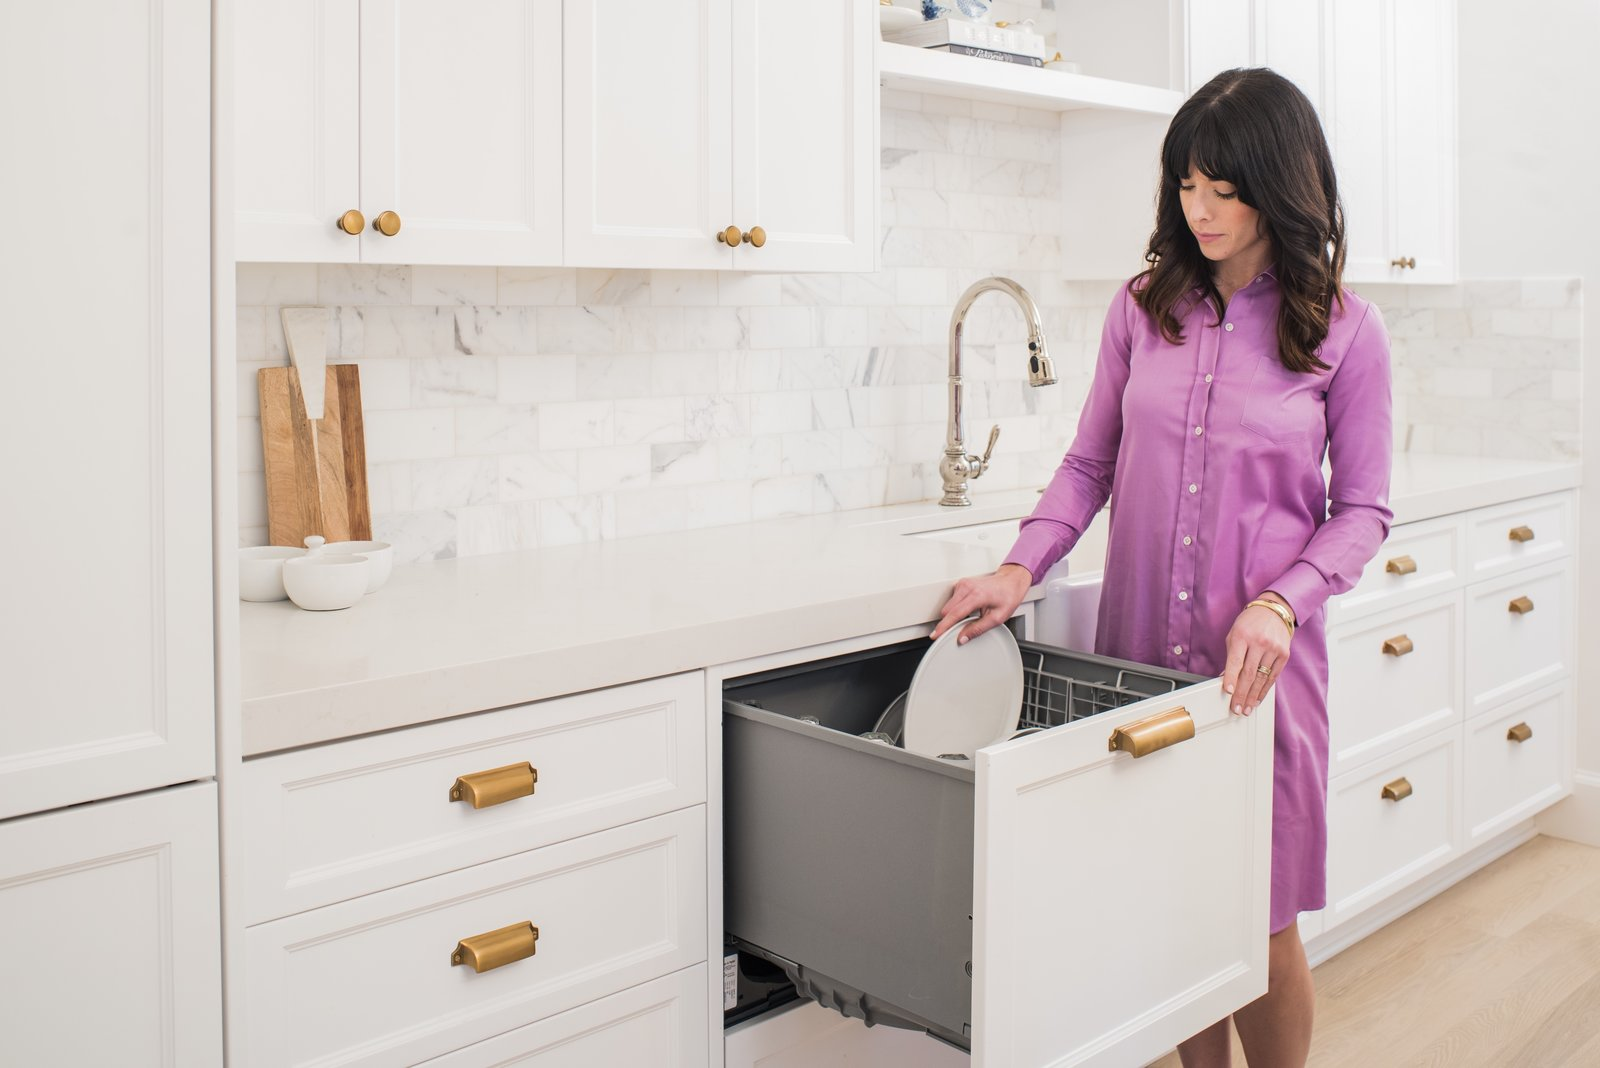 The dishwasher slides out like a drawer and doesn't require you to crouch to load dishes. Folding tines allow for large pots, bowls, and plates up to 13  Photo 5 of 8 in An Interior Designer's Streamlined Kitchen